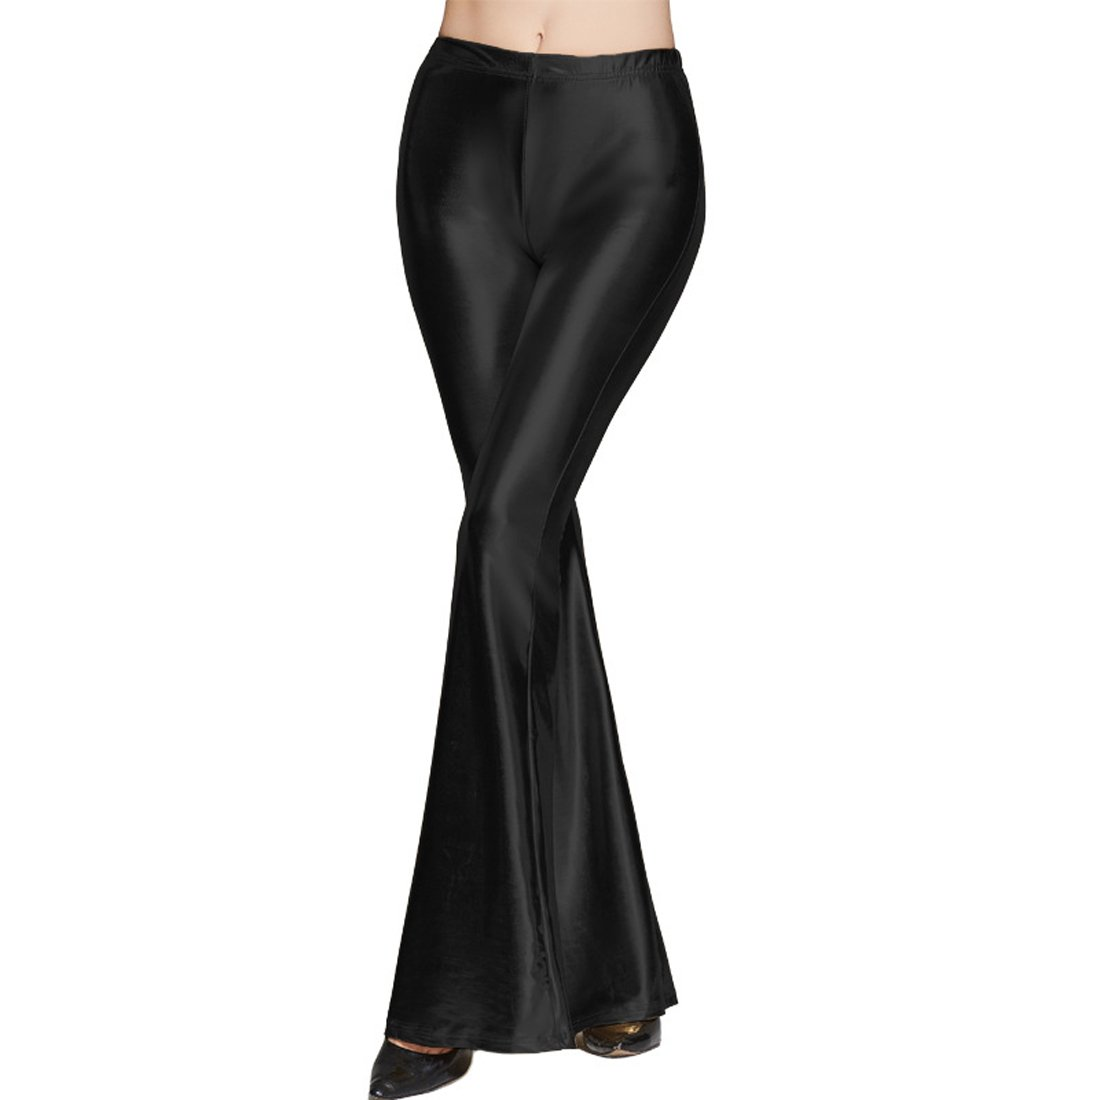 Destinas Women's High Waist Shiny Long Pants Flare Bell Bottom Trousers Black